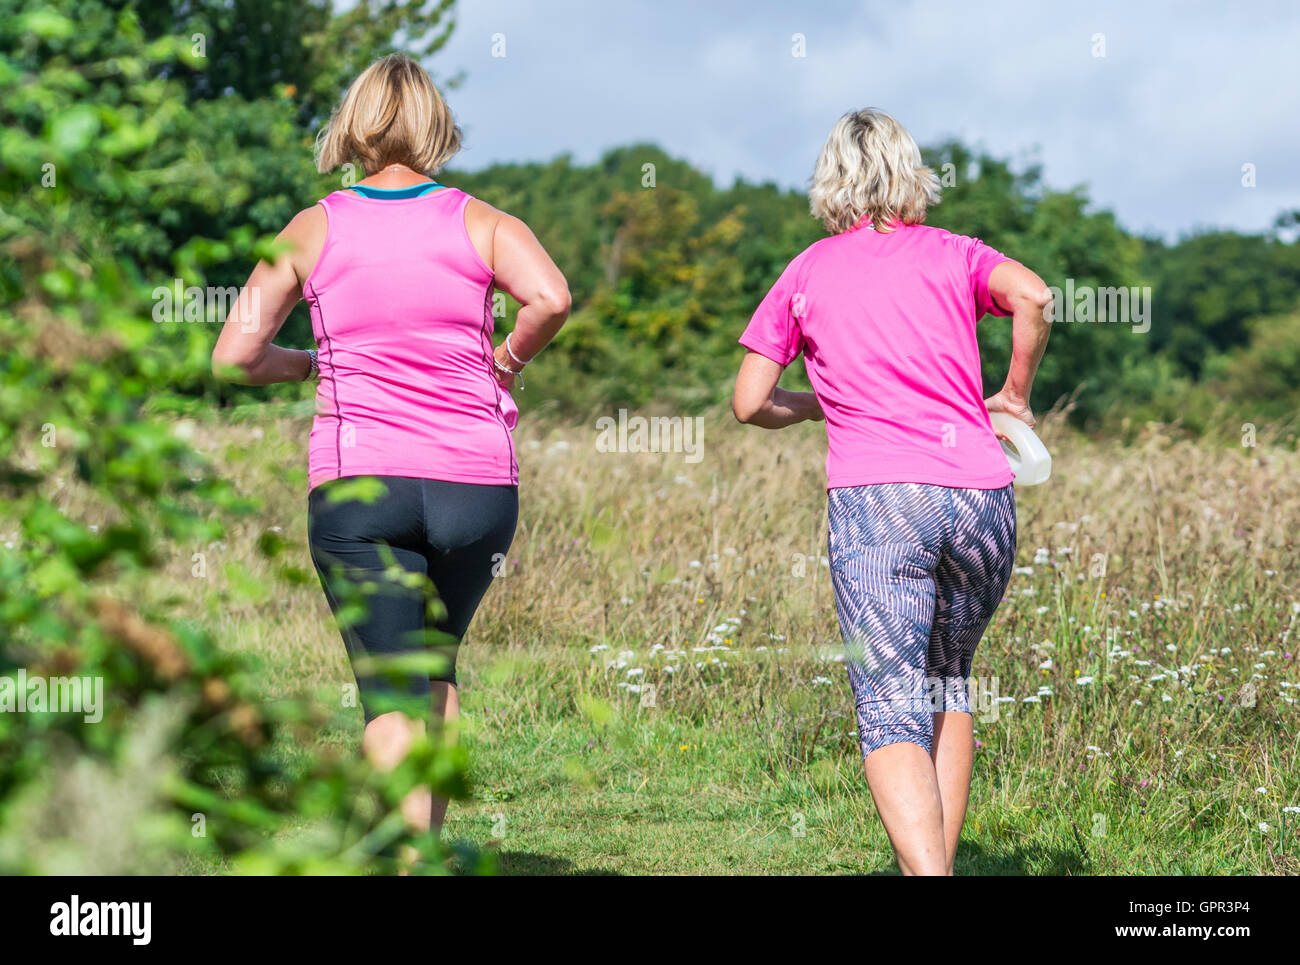 healthy-lifestyle-pair-of-female-joggers